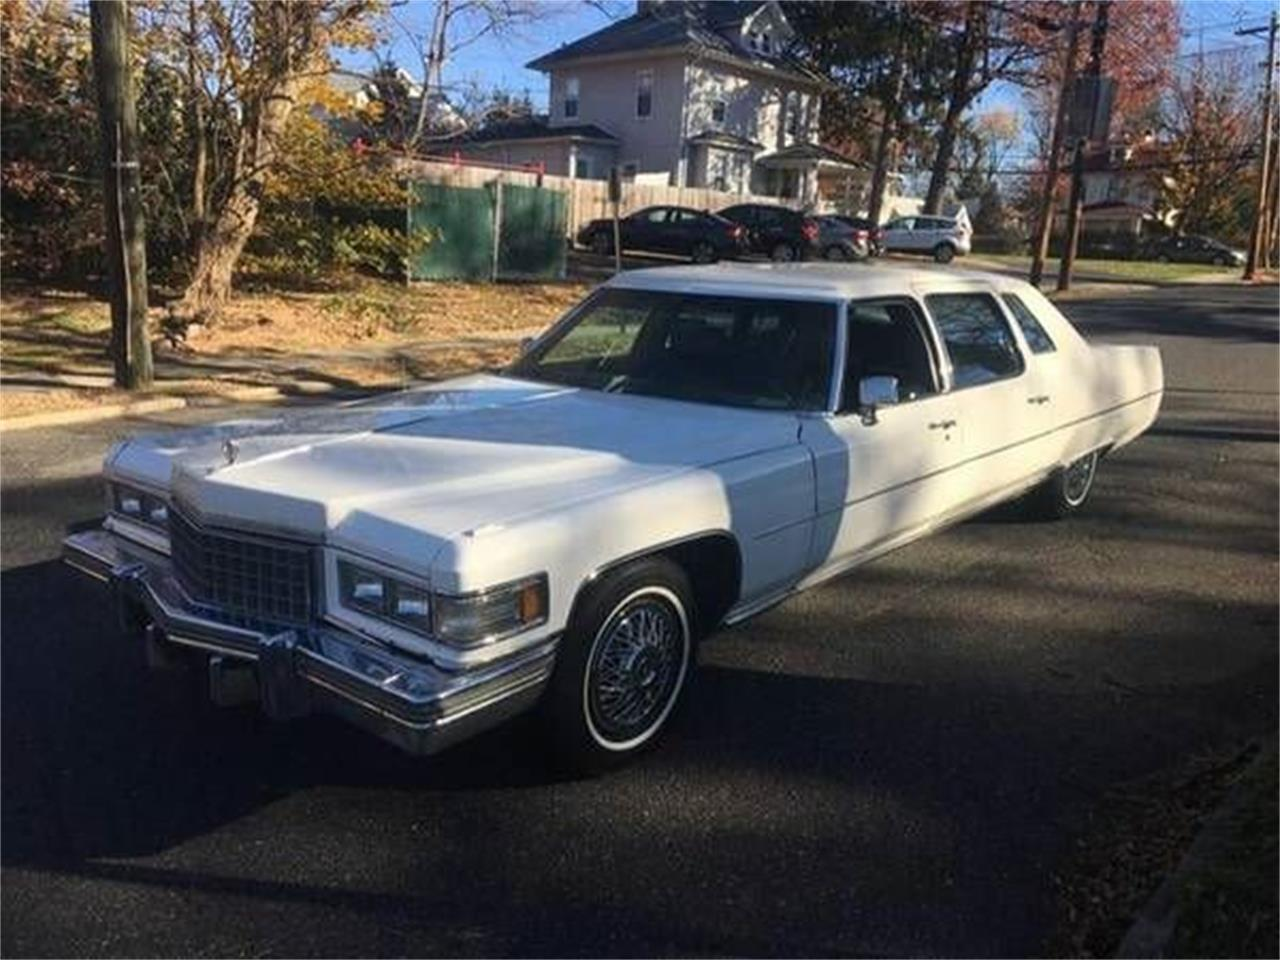 Limo For Sale >> For Sale 1976 Cadillac Limousine In Cadillac Michigan